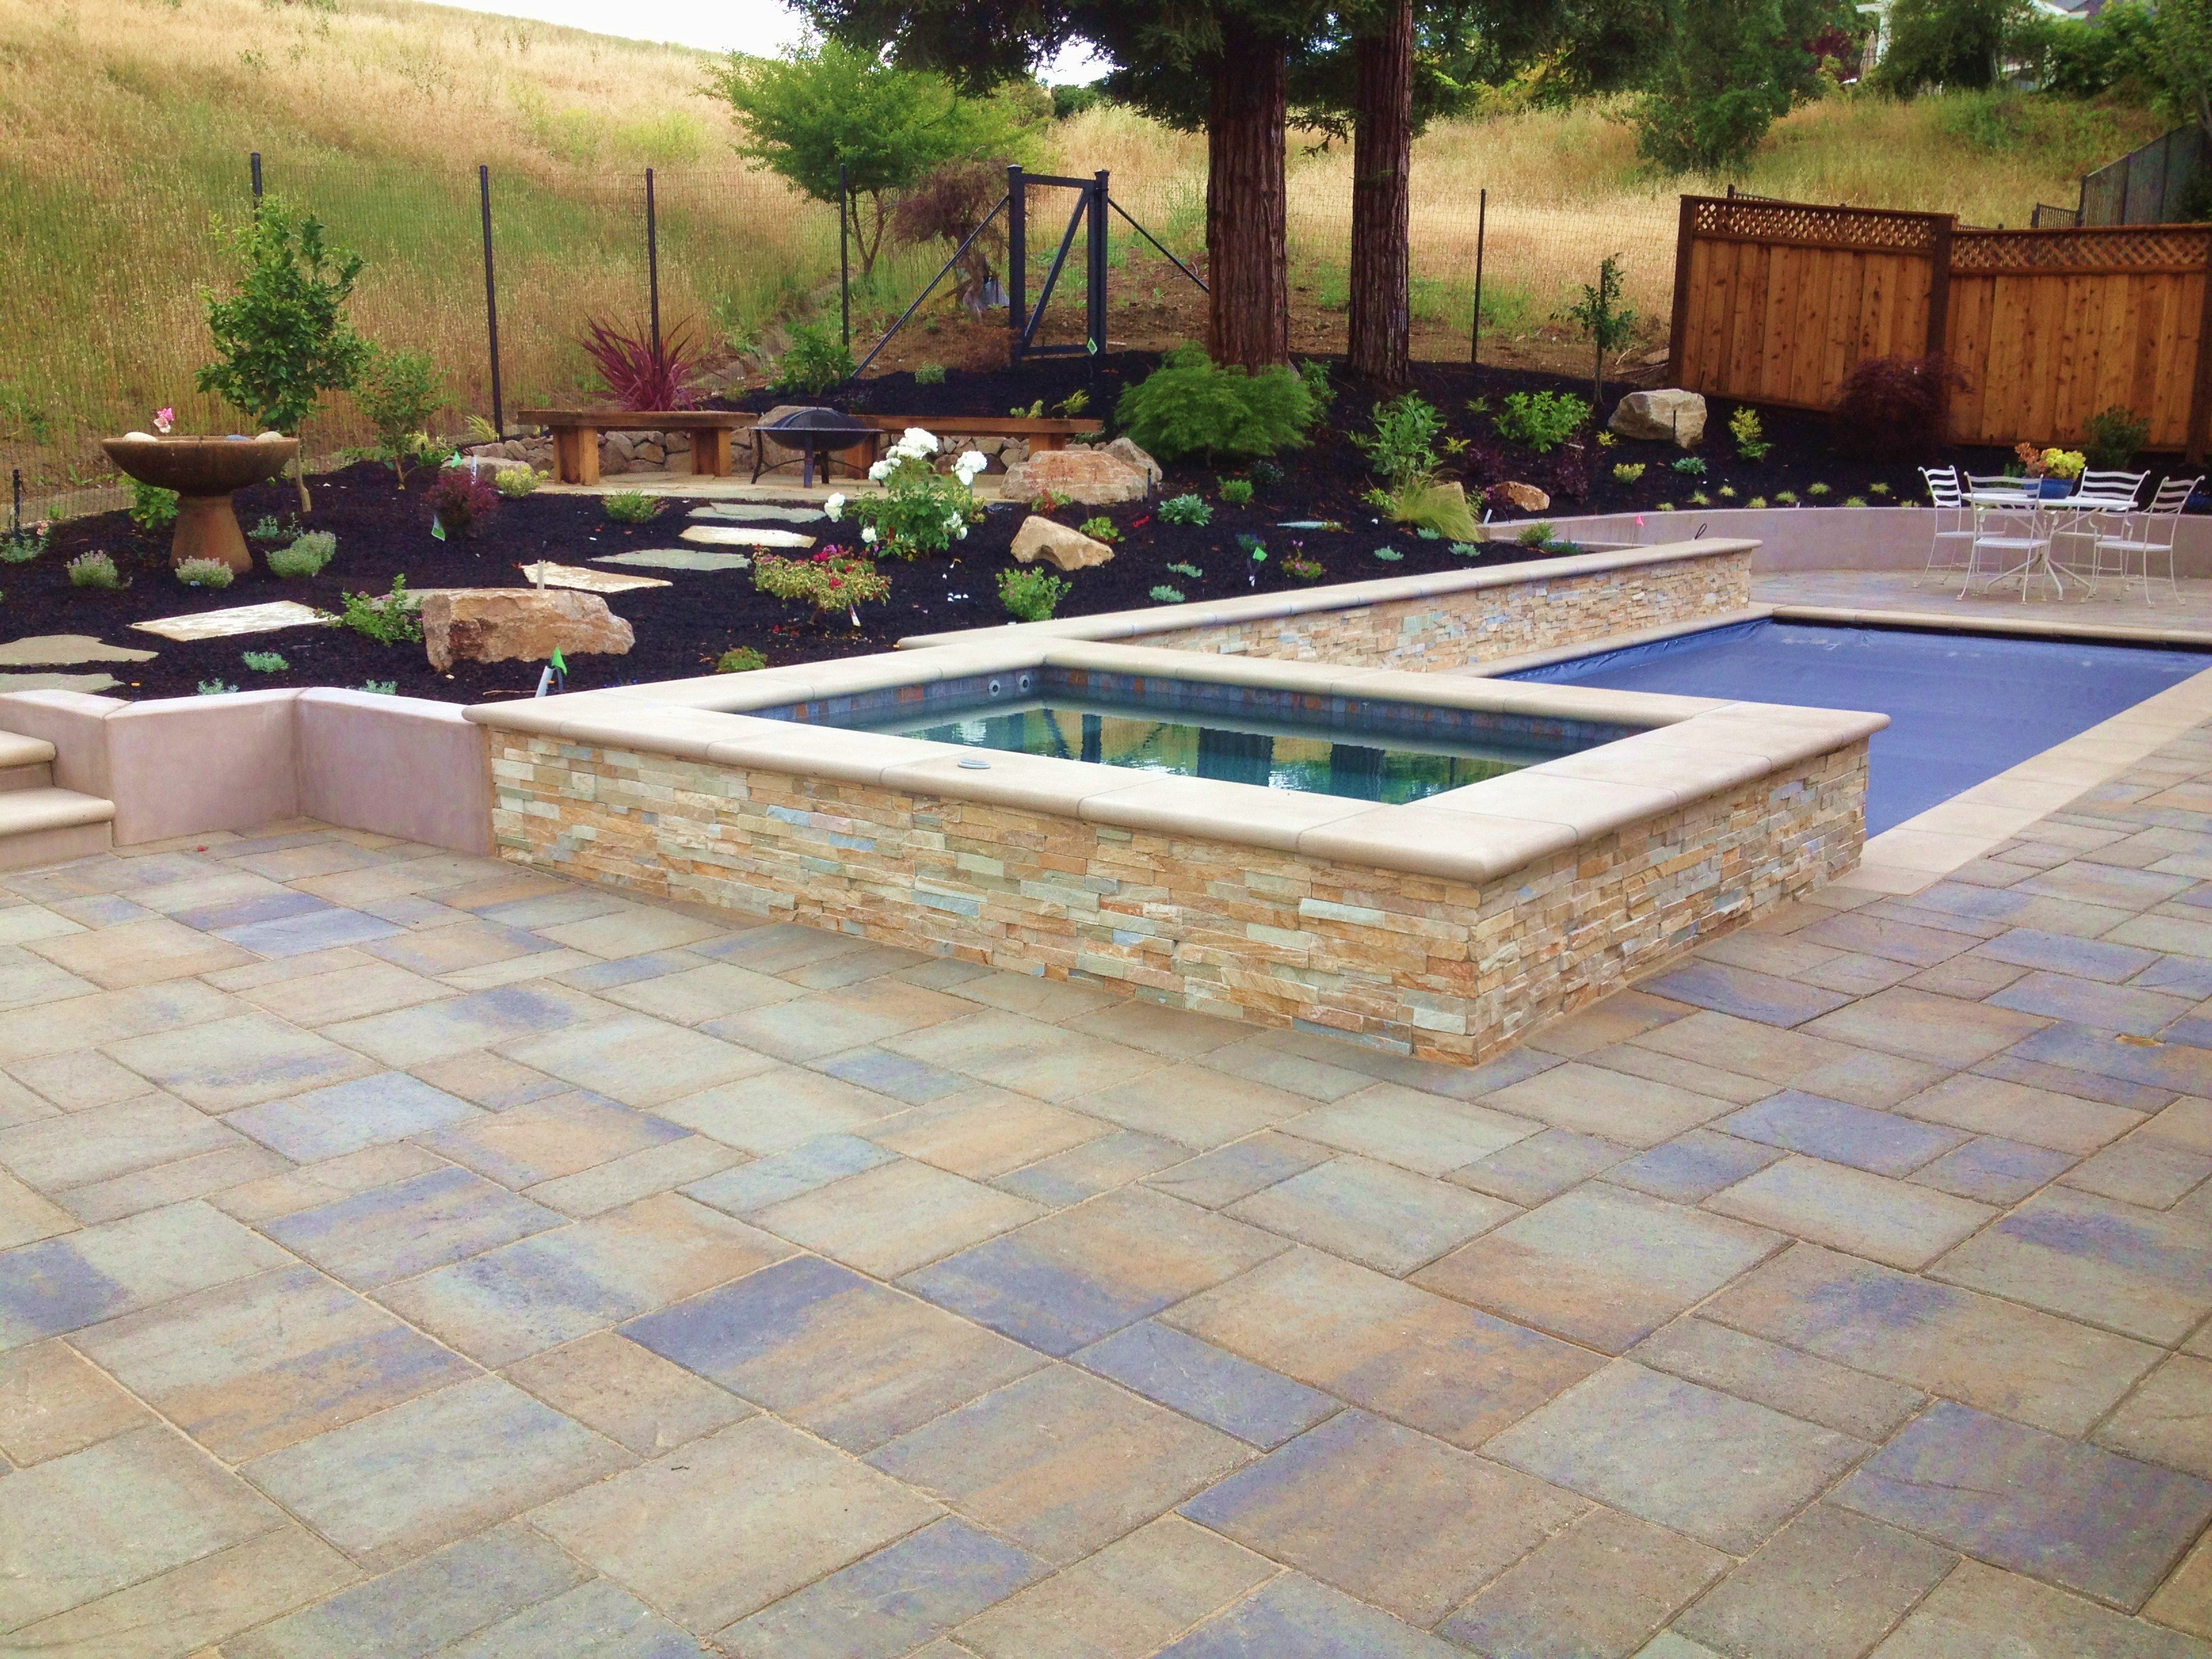 Hardscapes liedstrand landscaping Flagstone pavers around pool